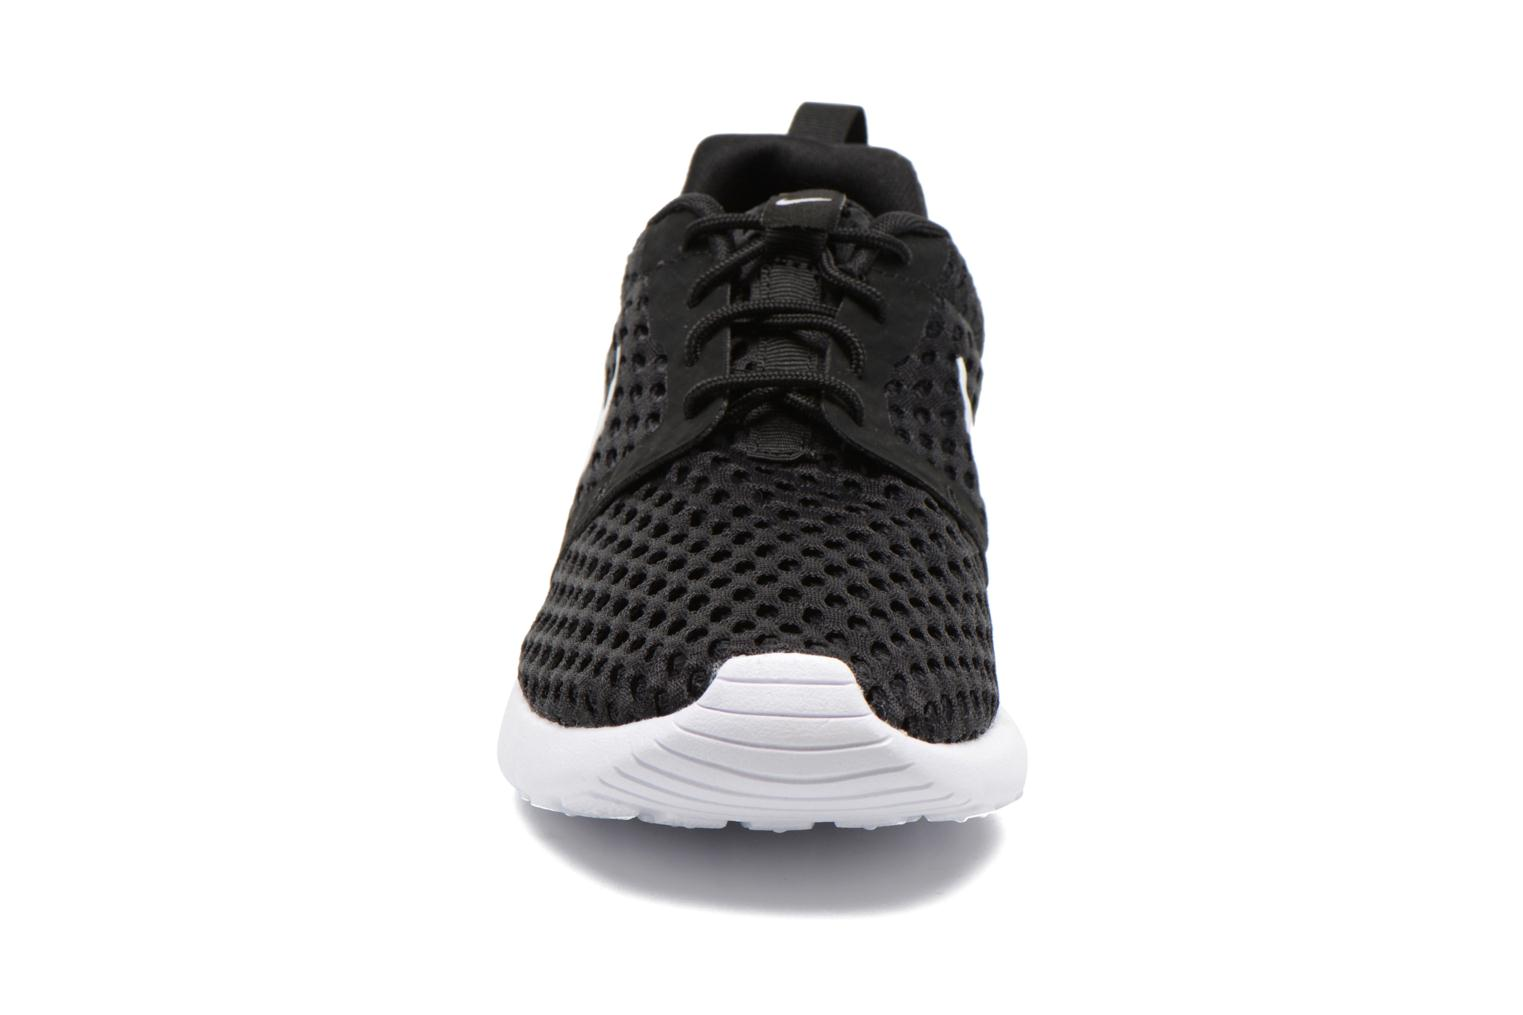 ROSHE ONE FLIGHT WEIGHT (GS) Black White